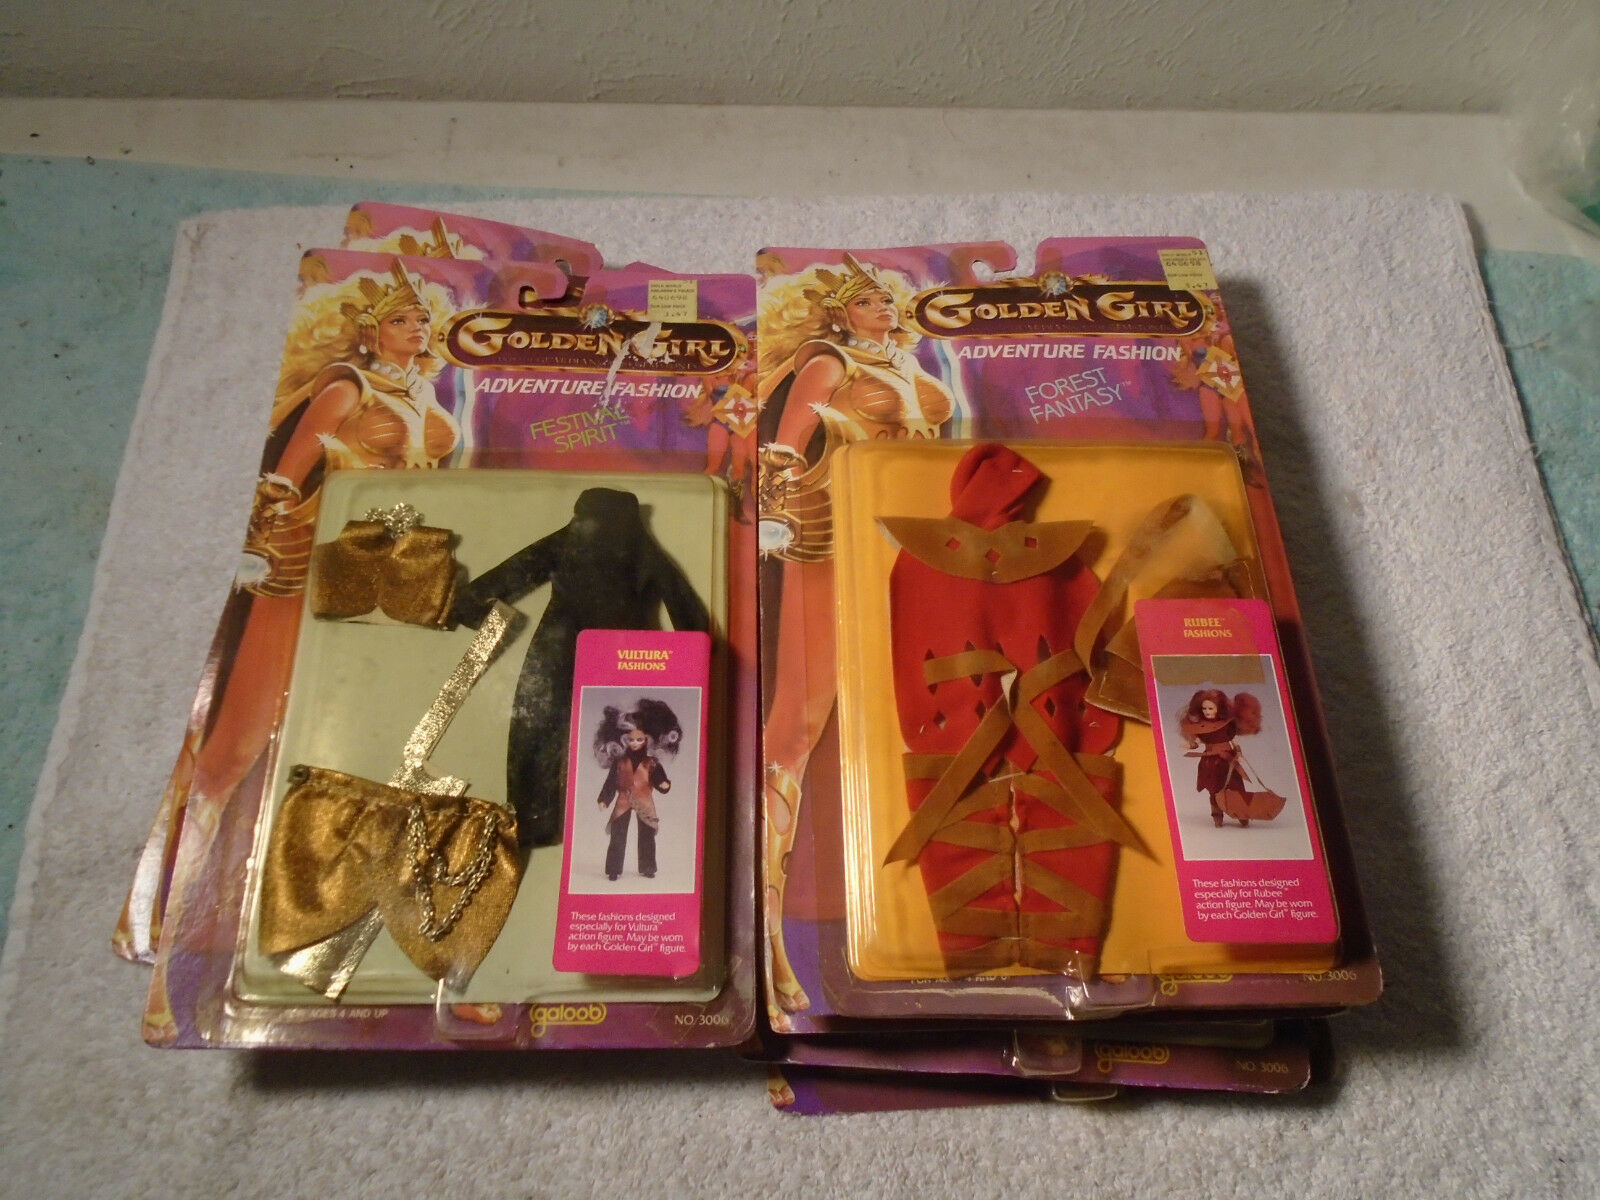 7 VINTAGE 1984 GALOOB goldEN GIRLS ACTION FIGURE ADVENTURE FASHION OUTFIT CLOTHS